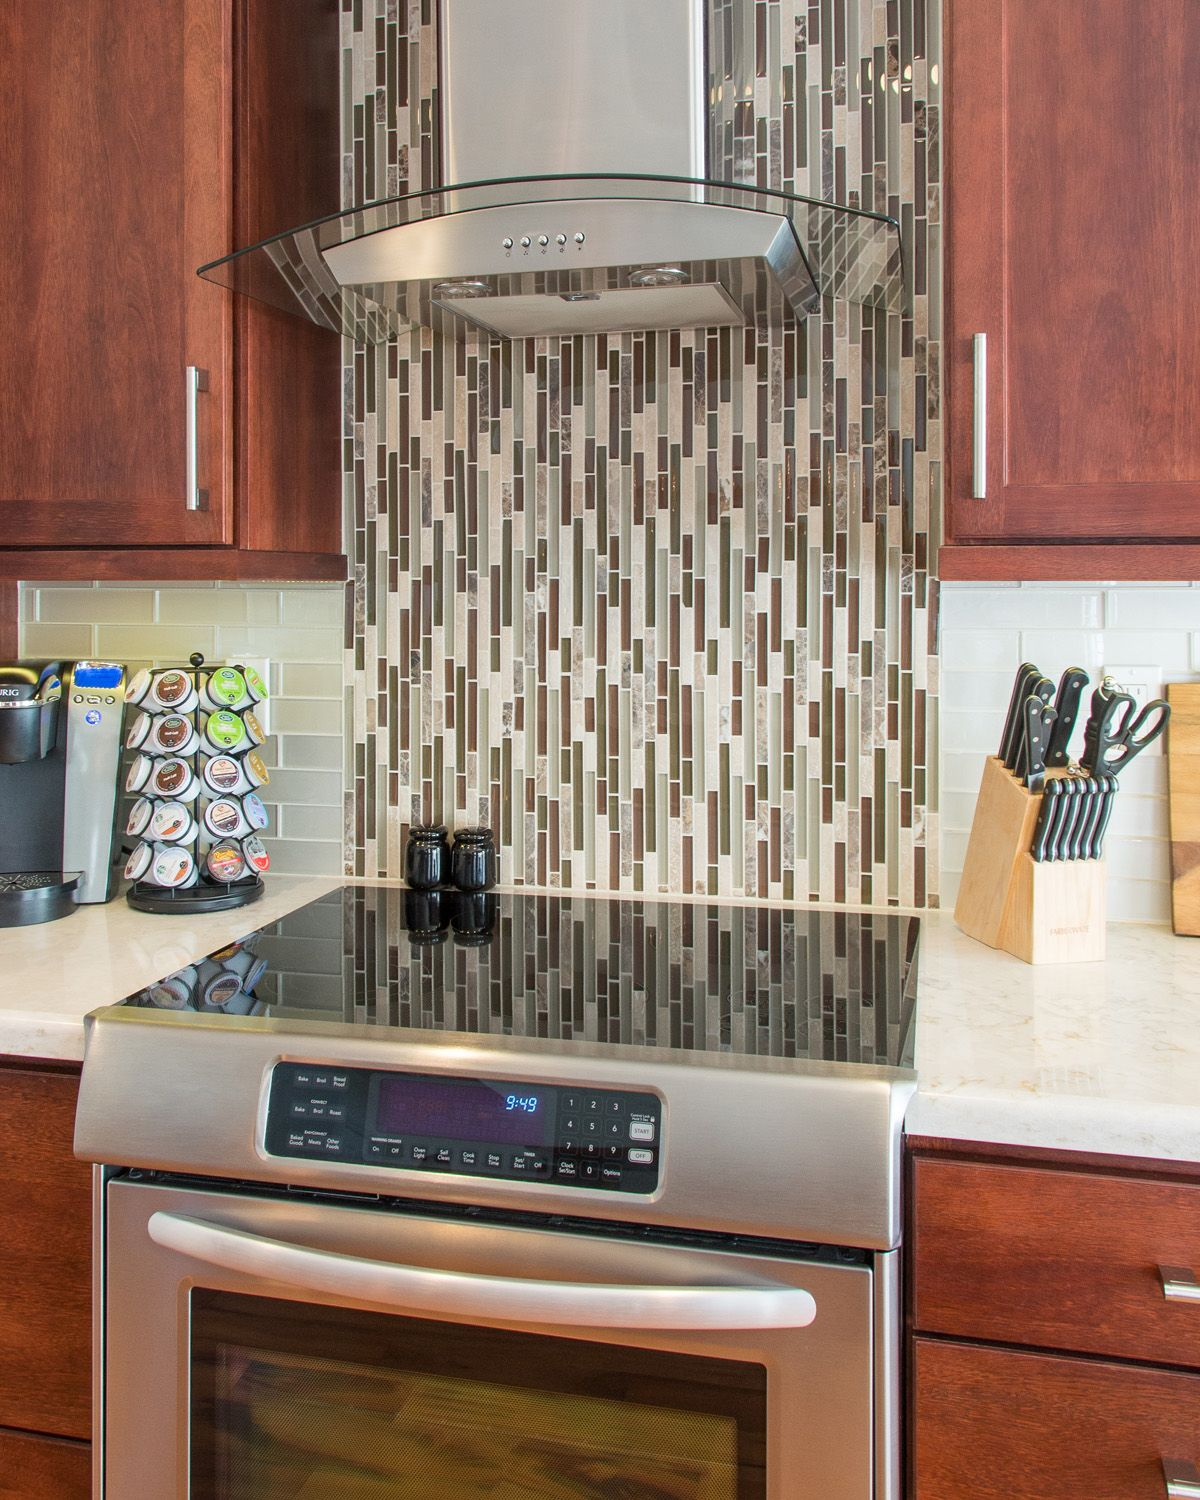 Charming Waterfall Backsplash Part - 4: Check Out The Waterfall Backsplash In This #SanDiego #kitchen #remodel! Www.